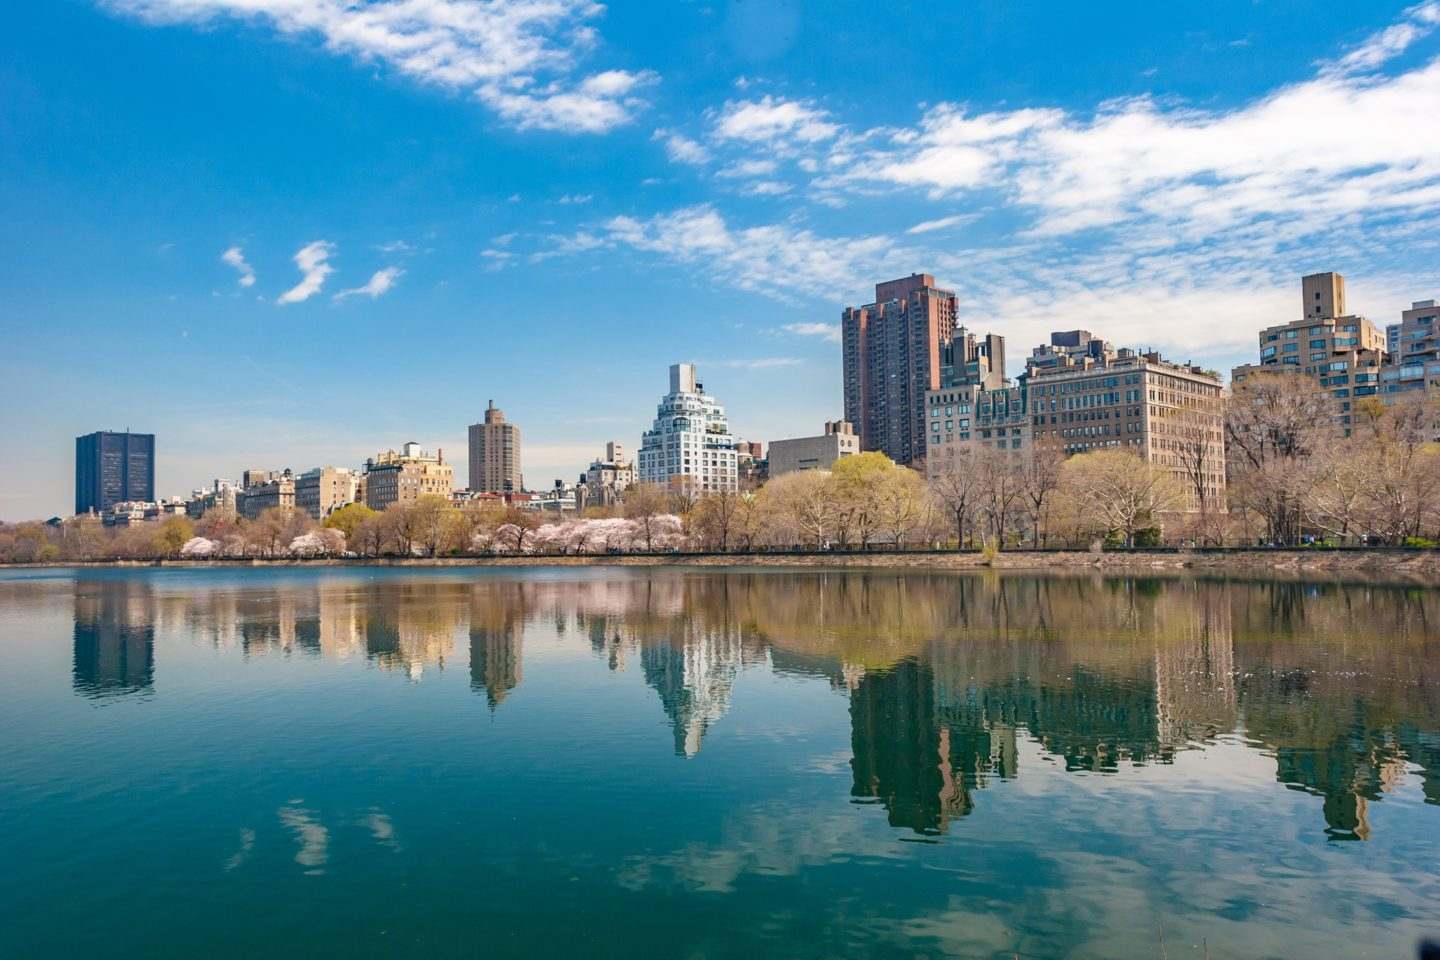 Don't miss seeing Central Park when you are in New York City